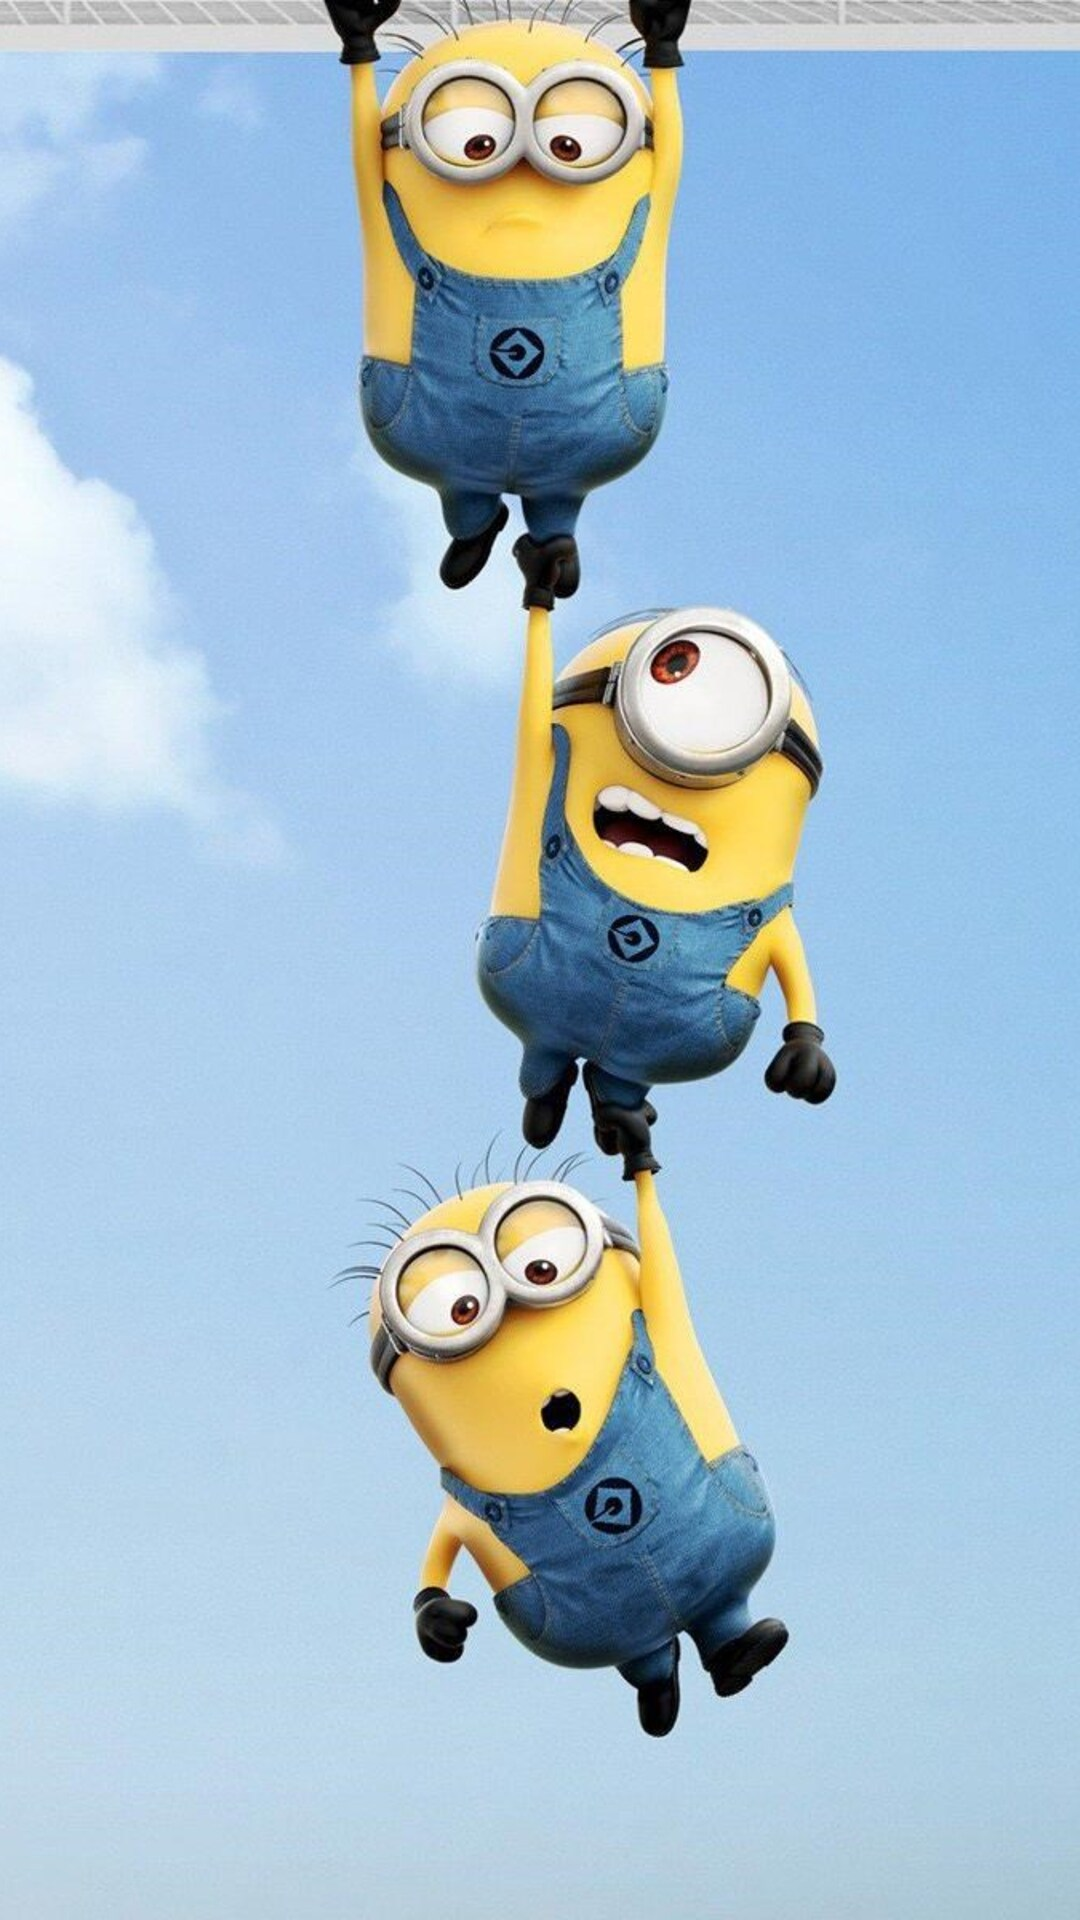 Minions Wallpapers Full HD